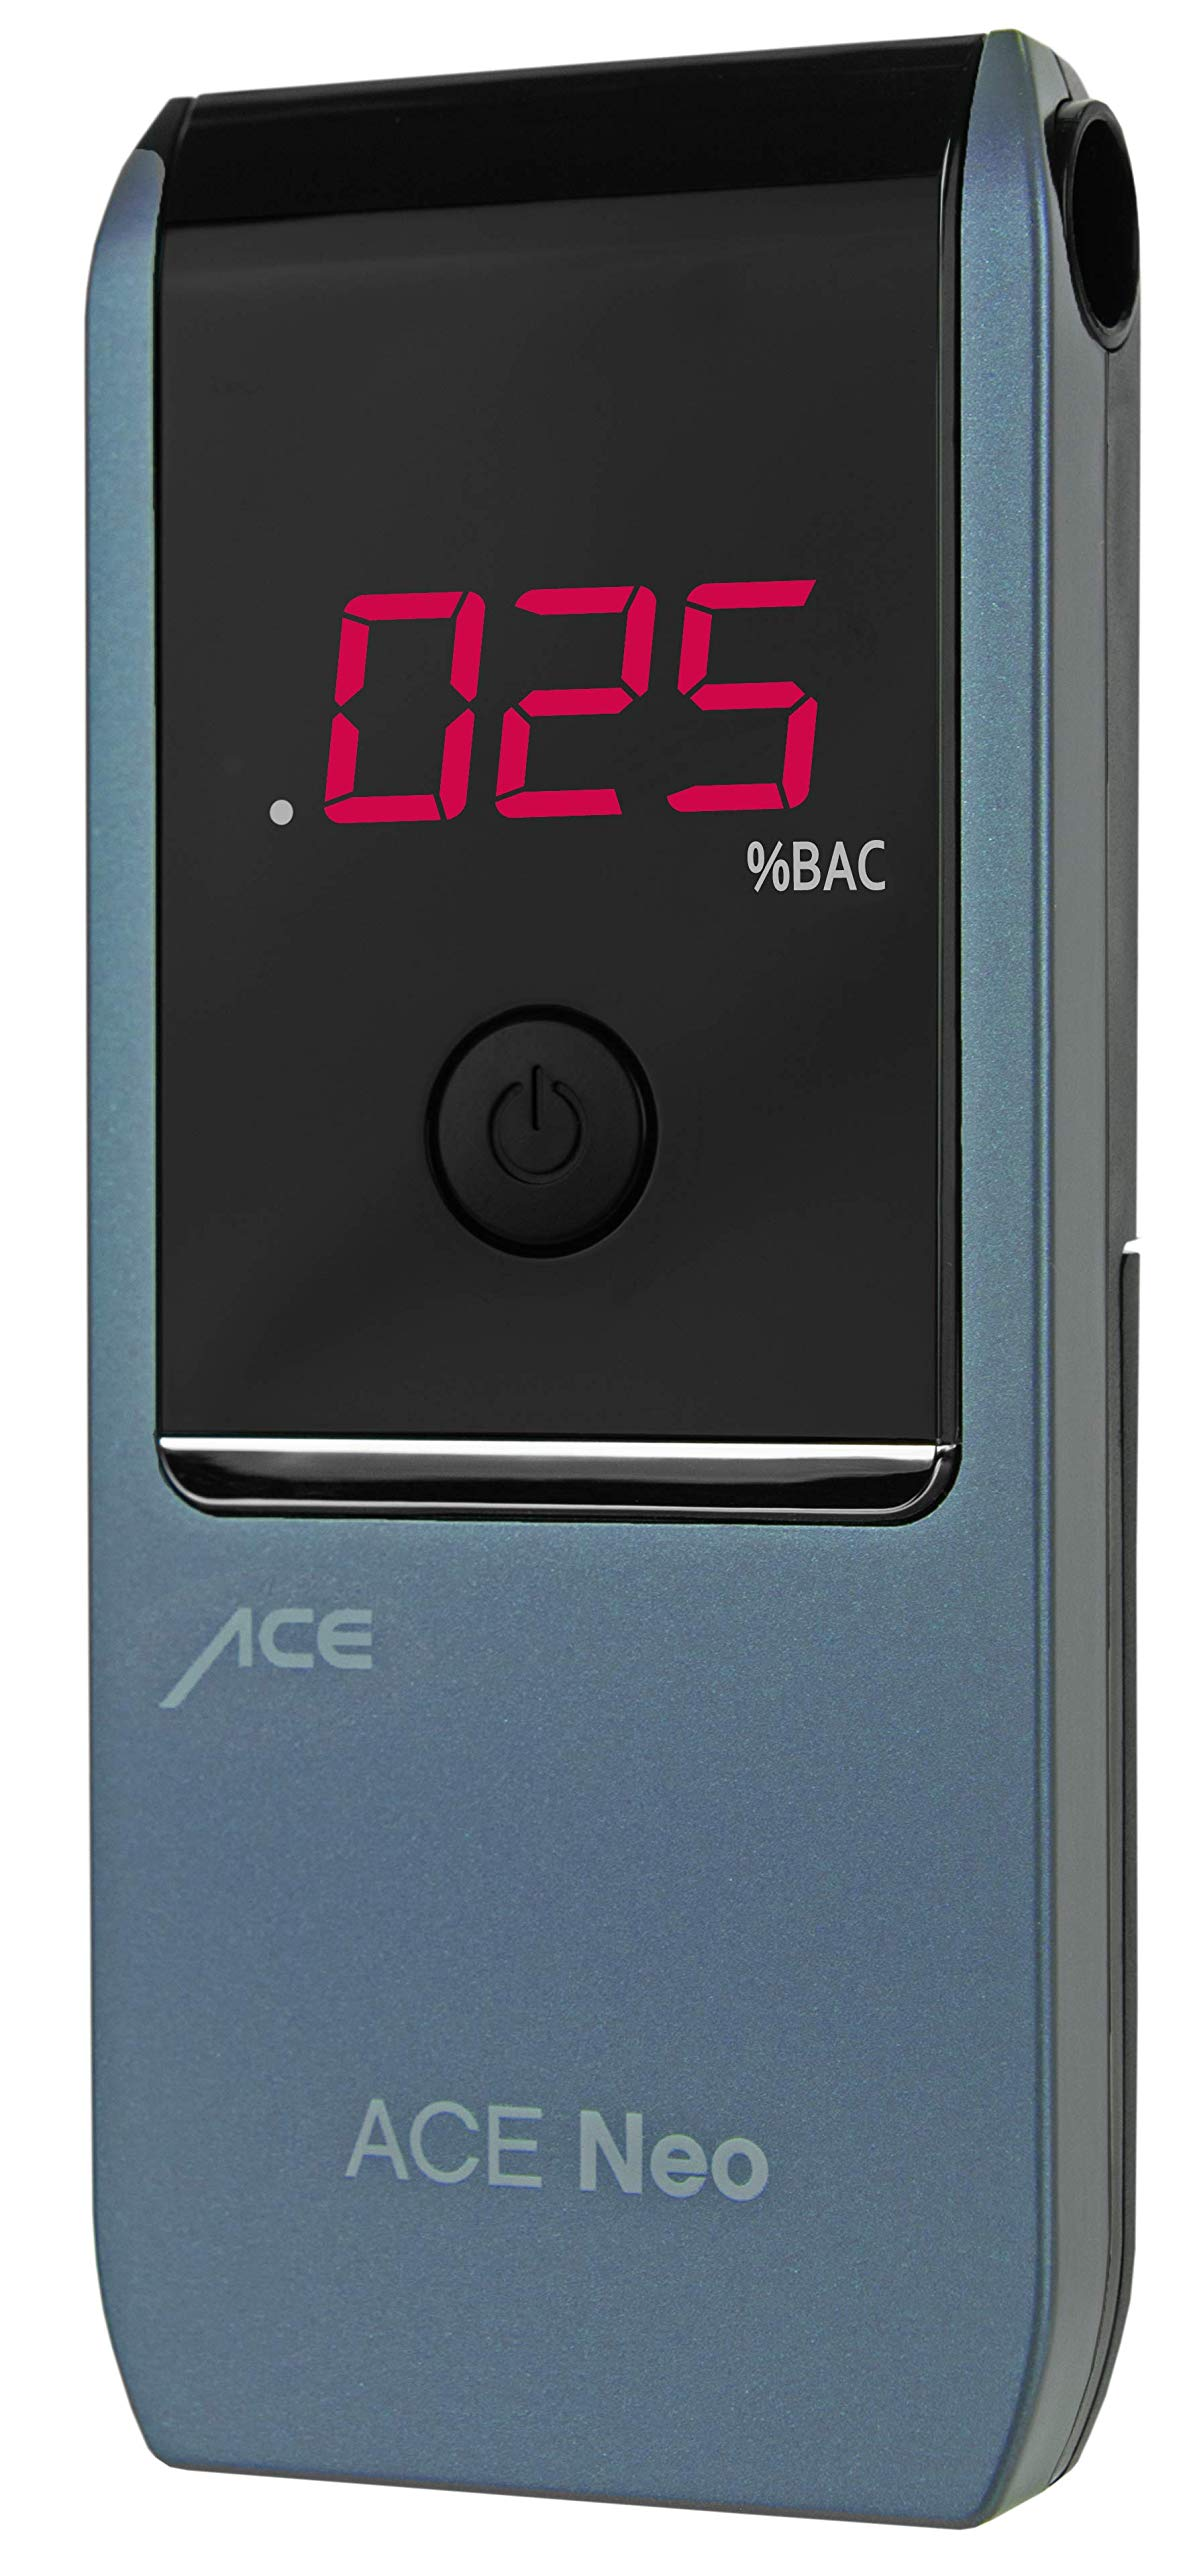 ACE Neo Breathalyzer with Police Grade Accurate Portable Fuel Cell Sensor and .005% Accuracy, Blue by ACE Instruments (Image #1)